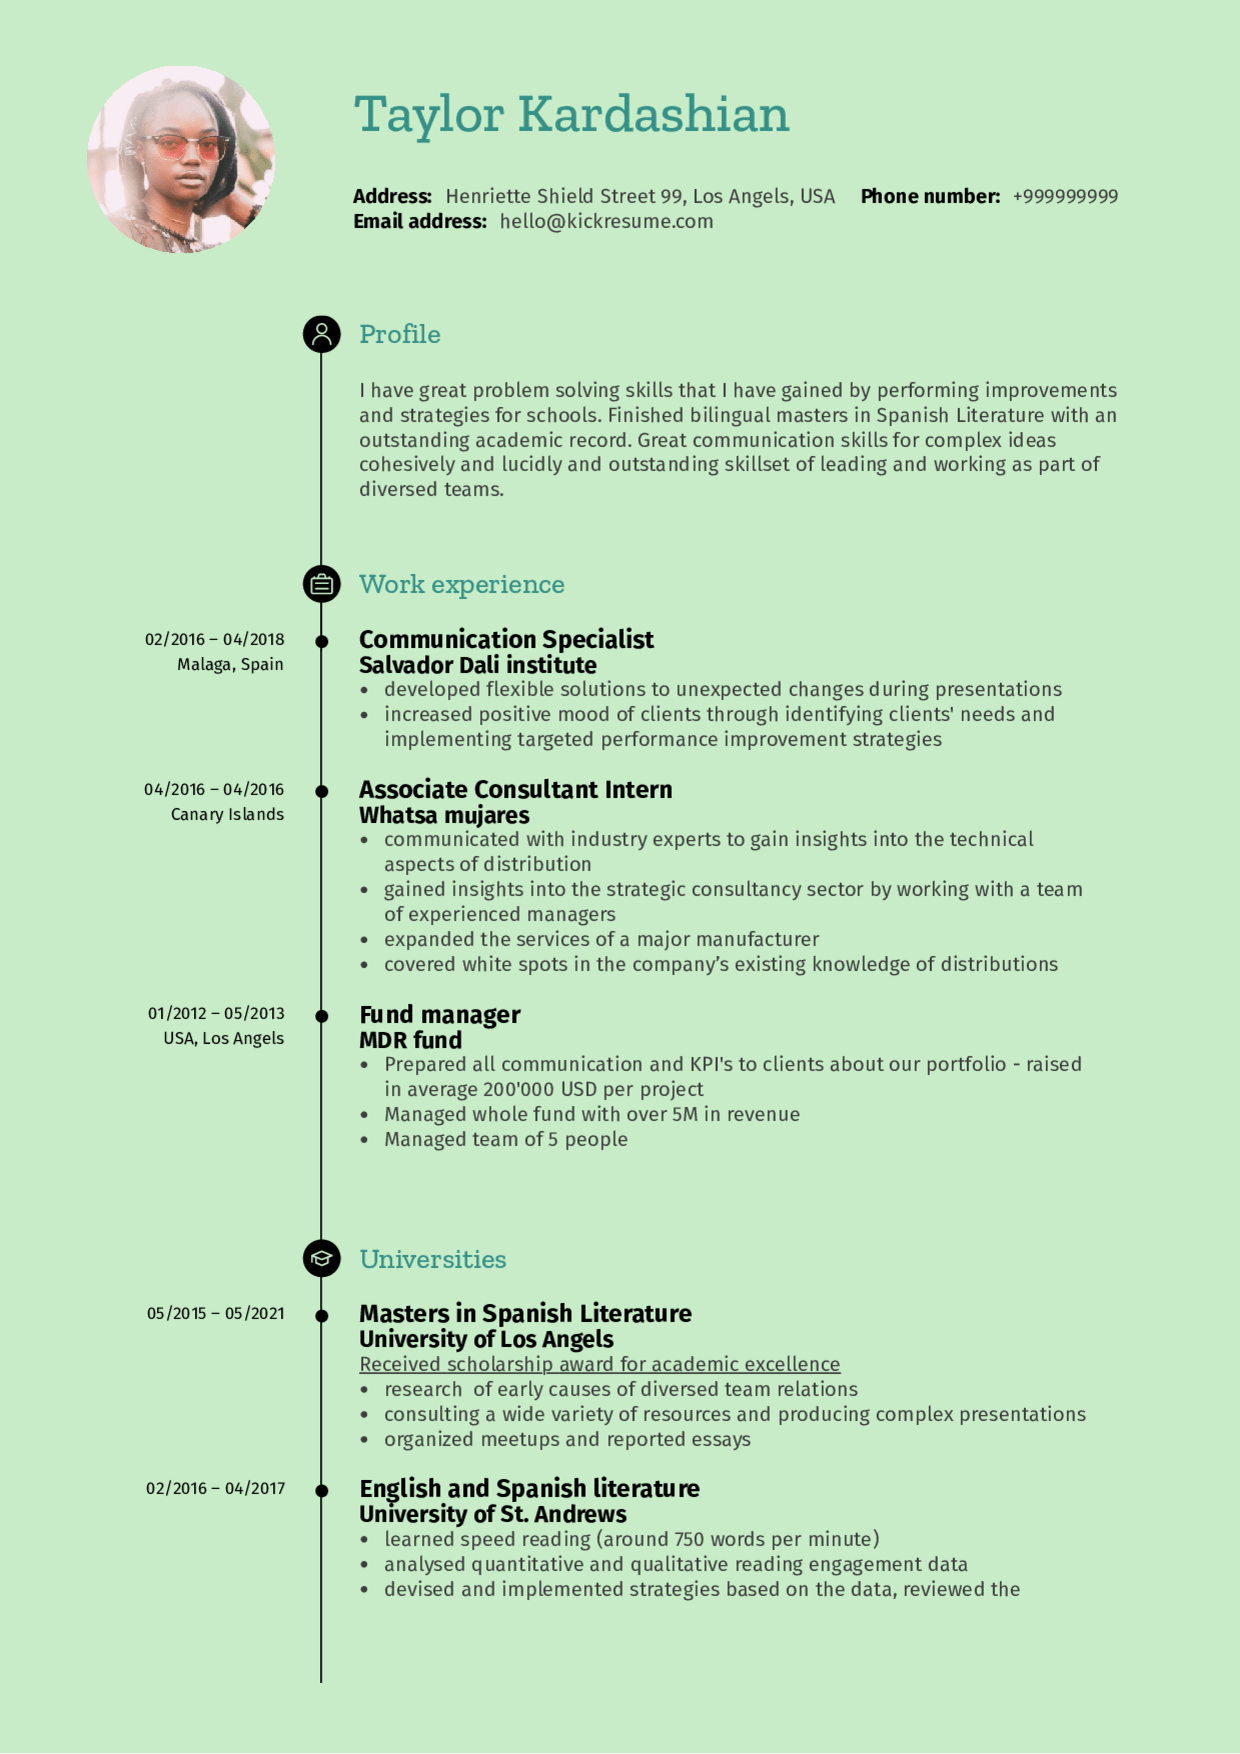 Resume Examples by Real People: Business strategy executive resume ...